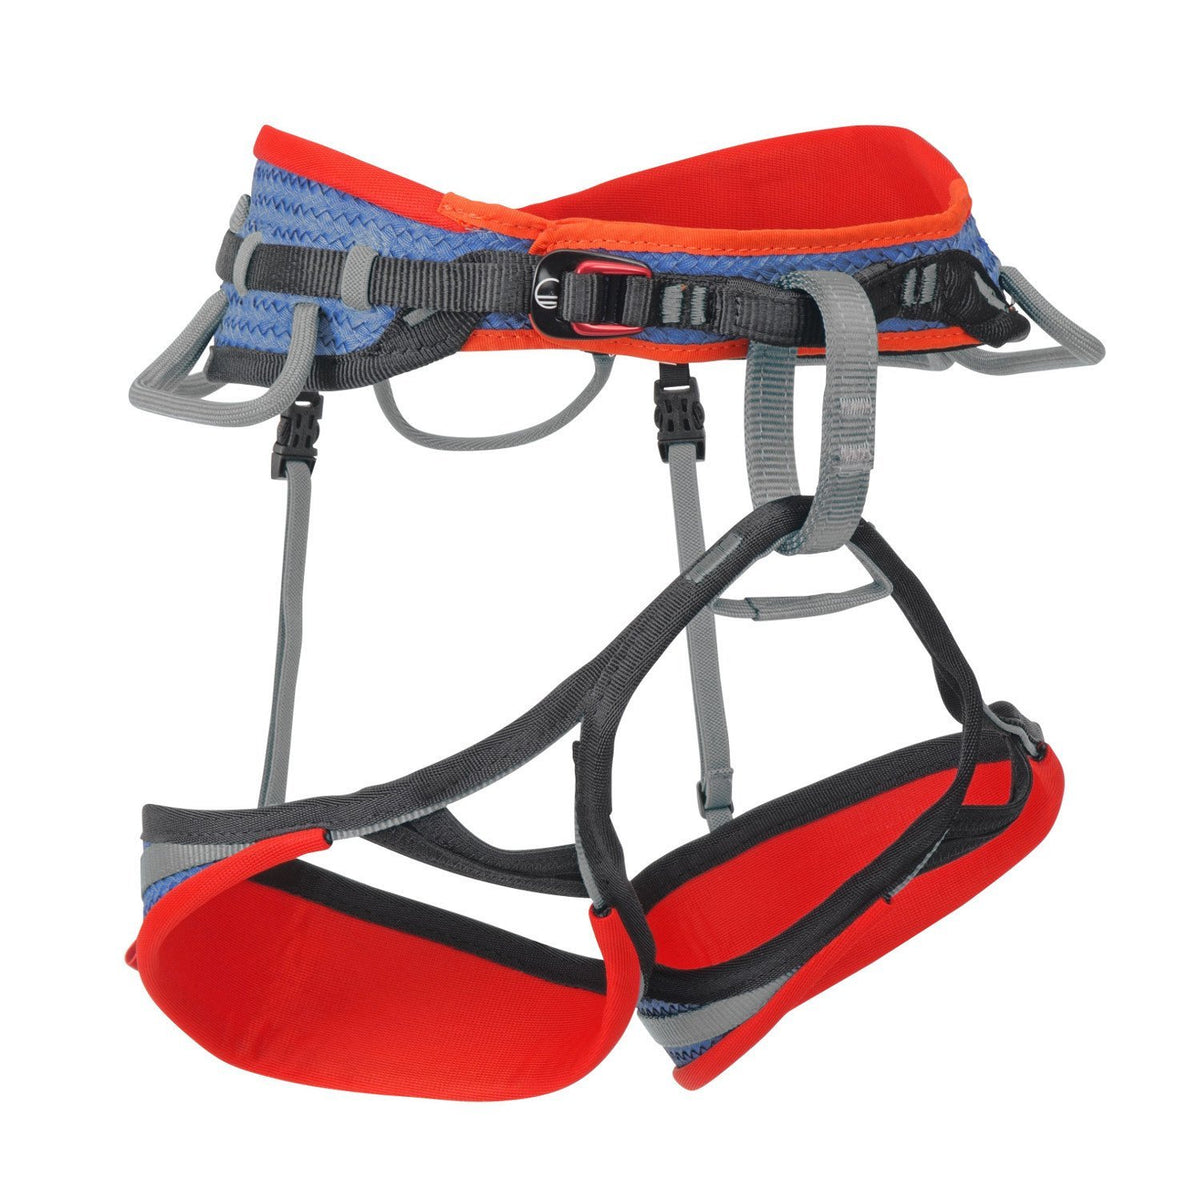 Wild Country Mission Sport climbing Harness, front/side view, in red, black and grey colours